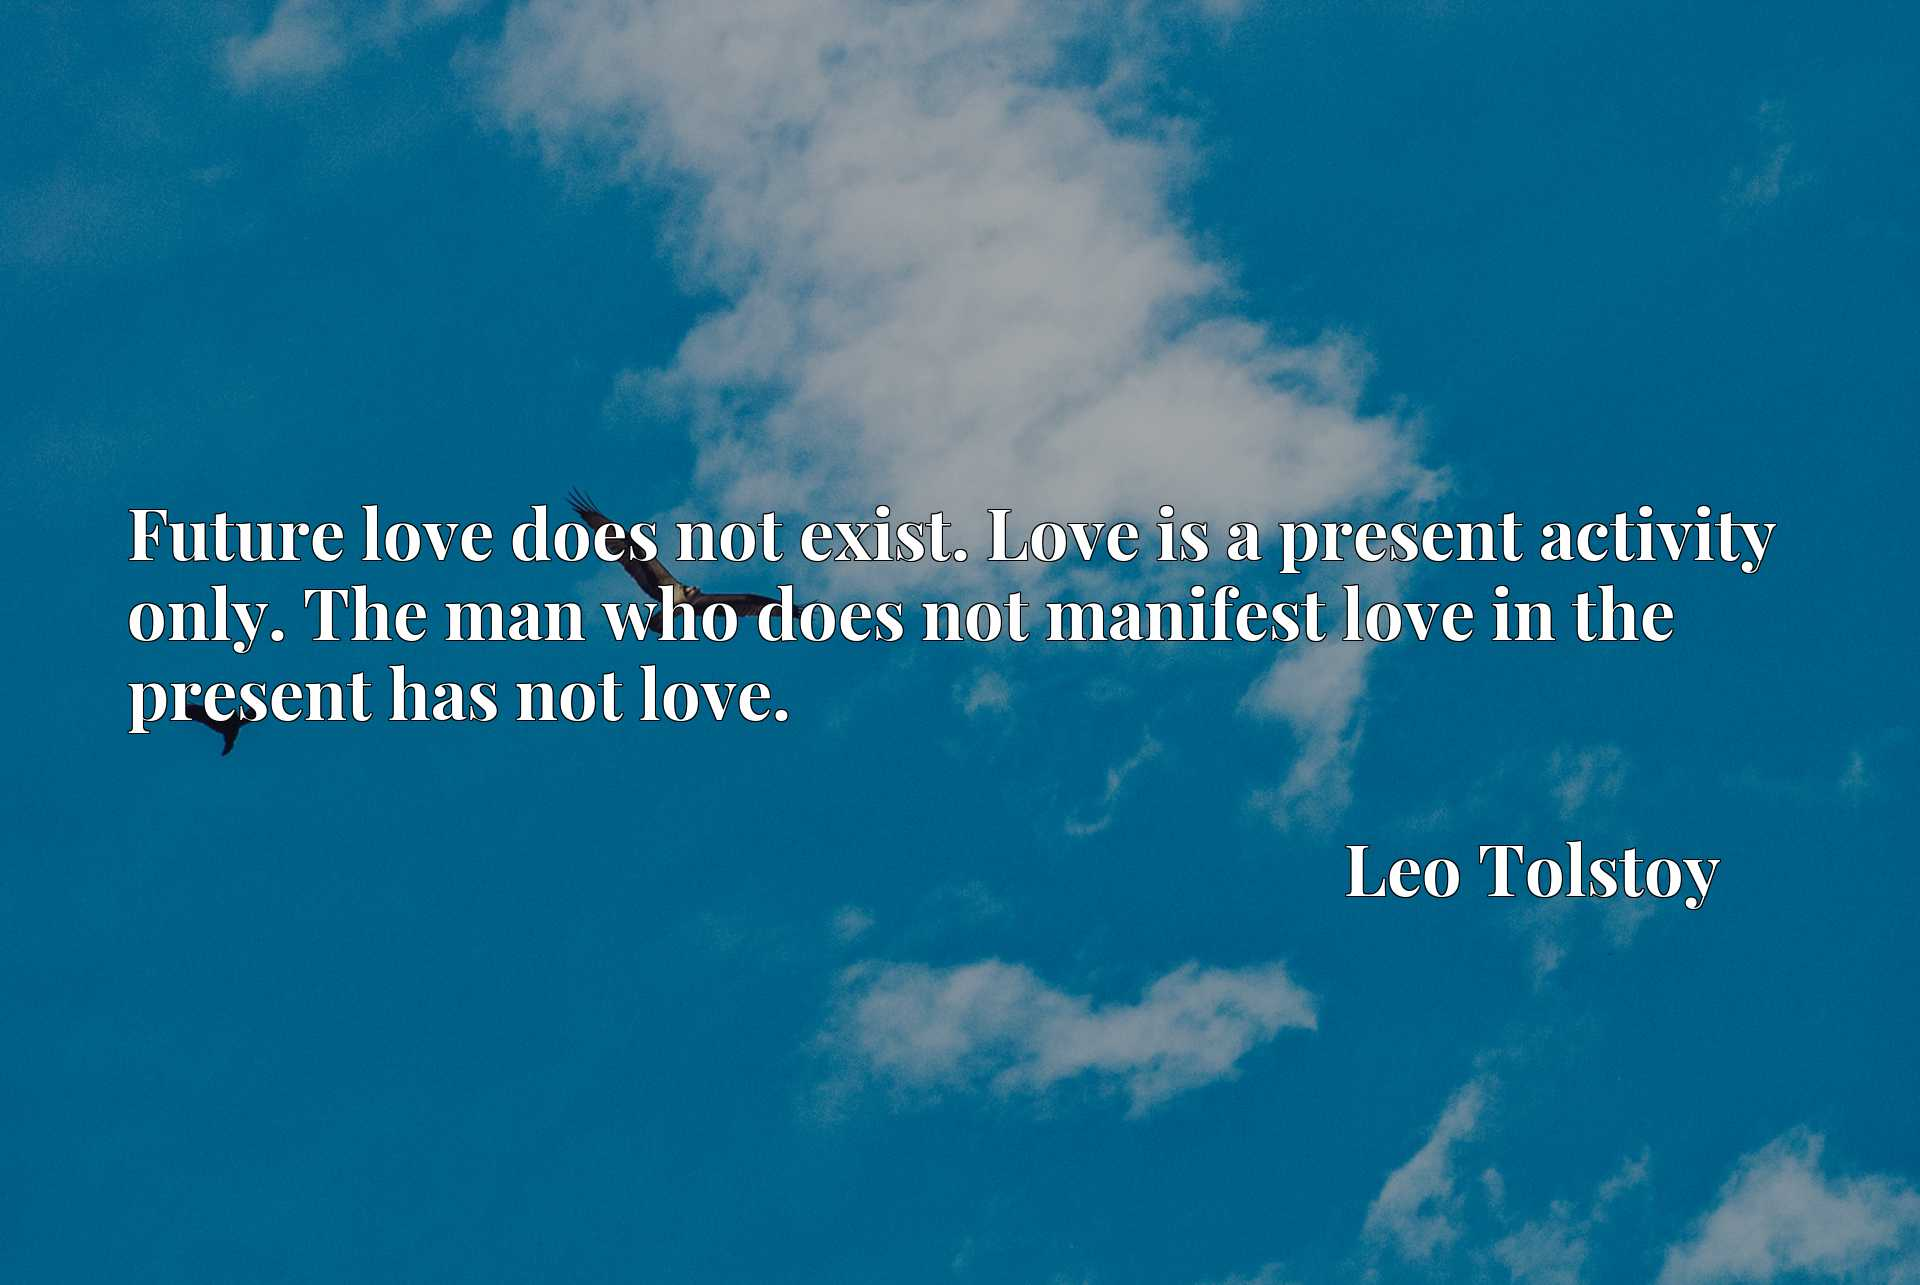 Future love does not exist. Love is a present activity only. The man who does not manifest love in the present has not love.